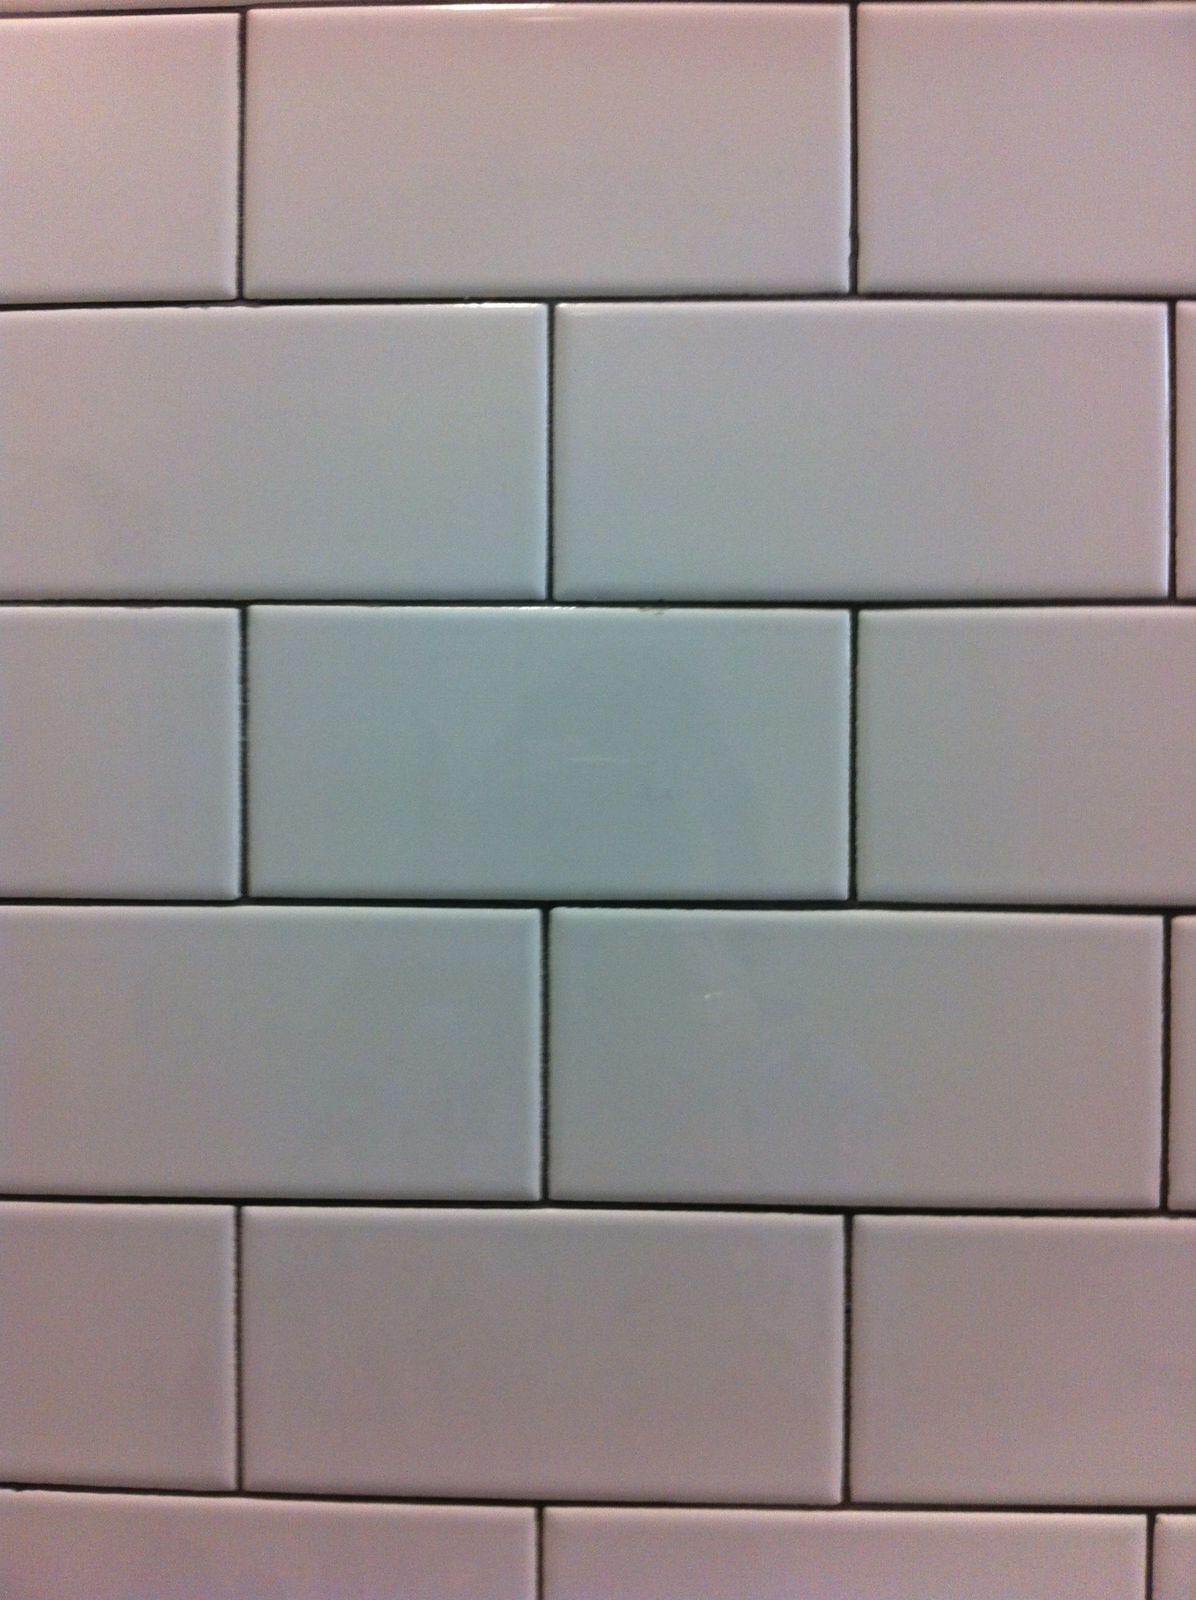 Grout Color For Backsplash Tile Pewter Or Too Dark